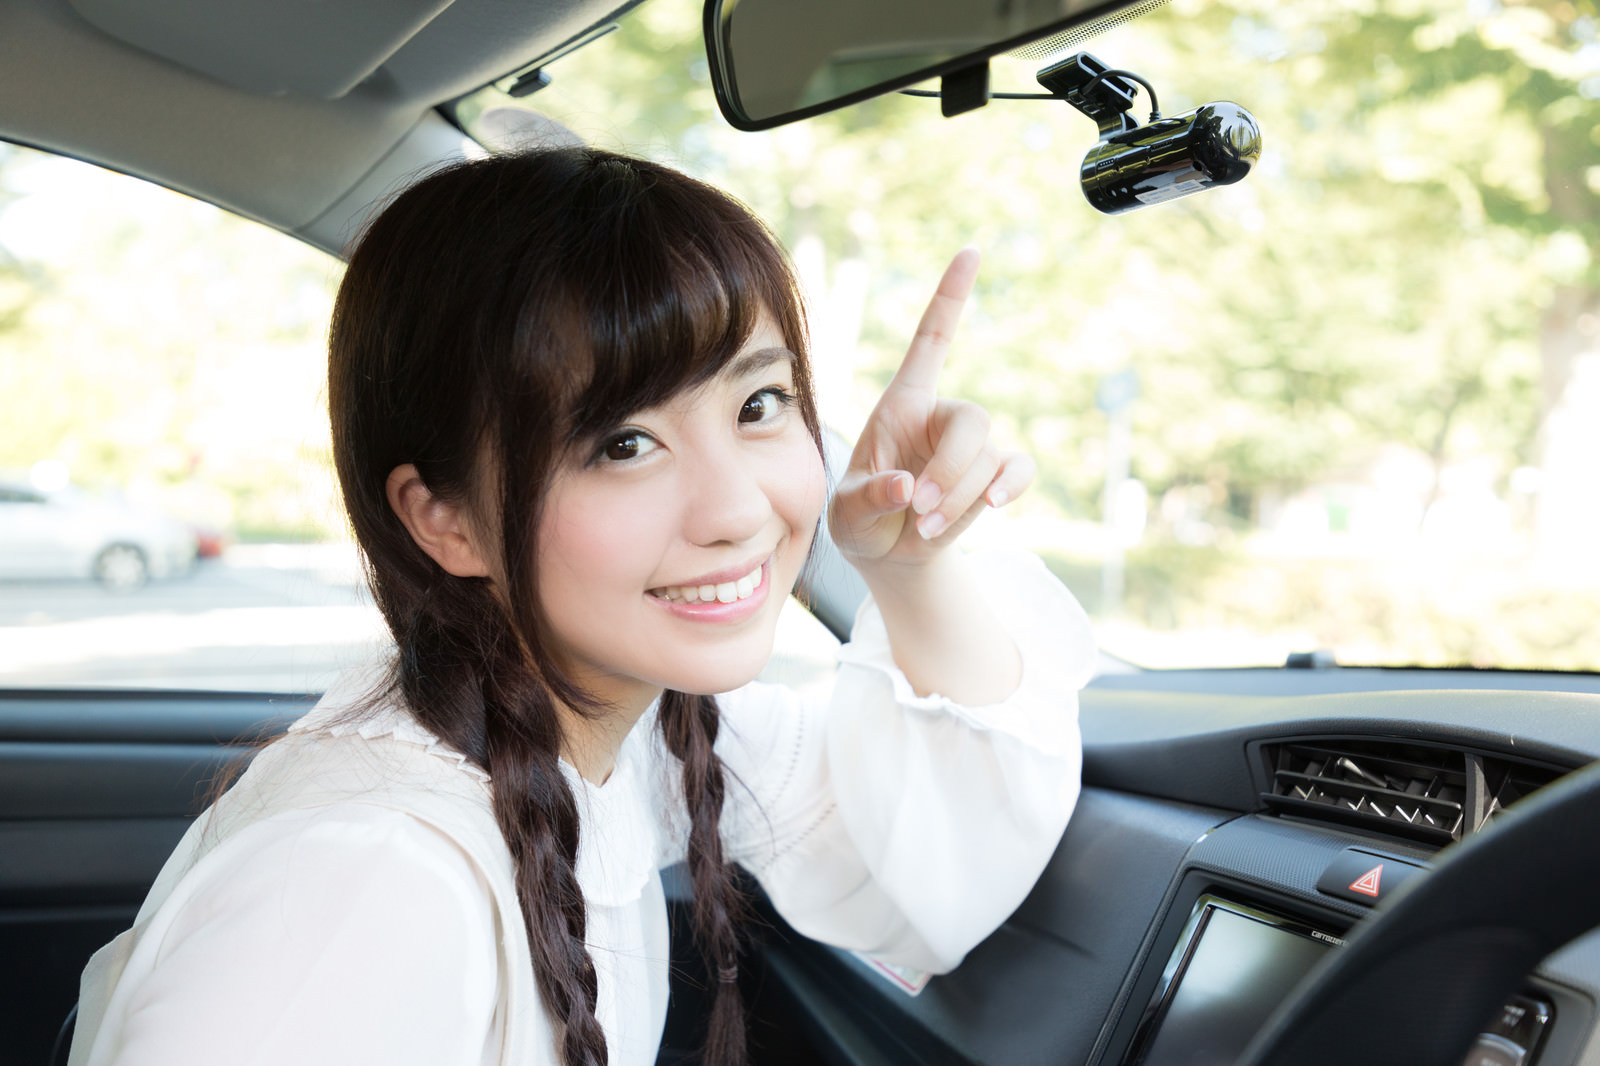 Yuka-shows-that-its-safe-for-her-to-drive.jpg